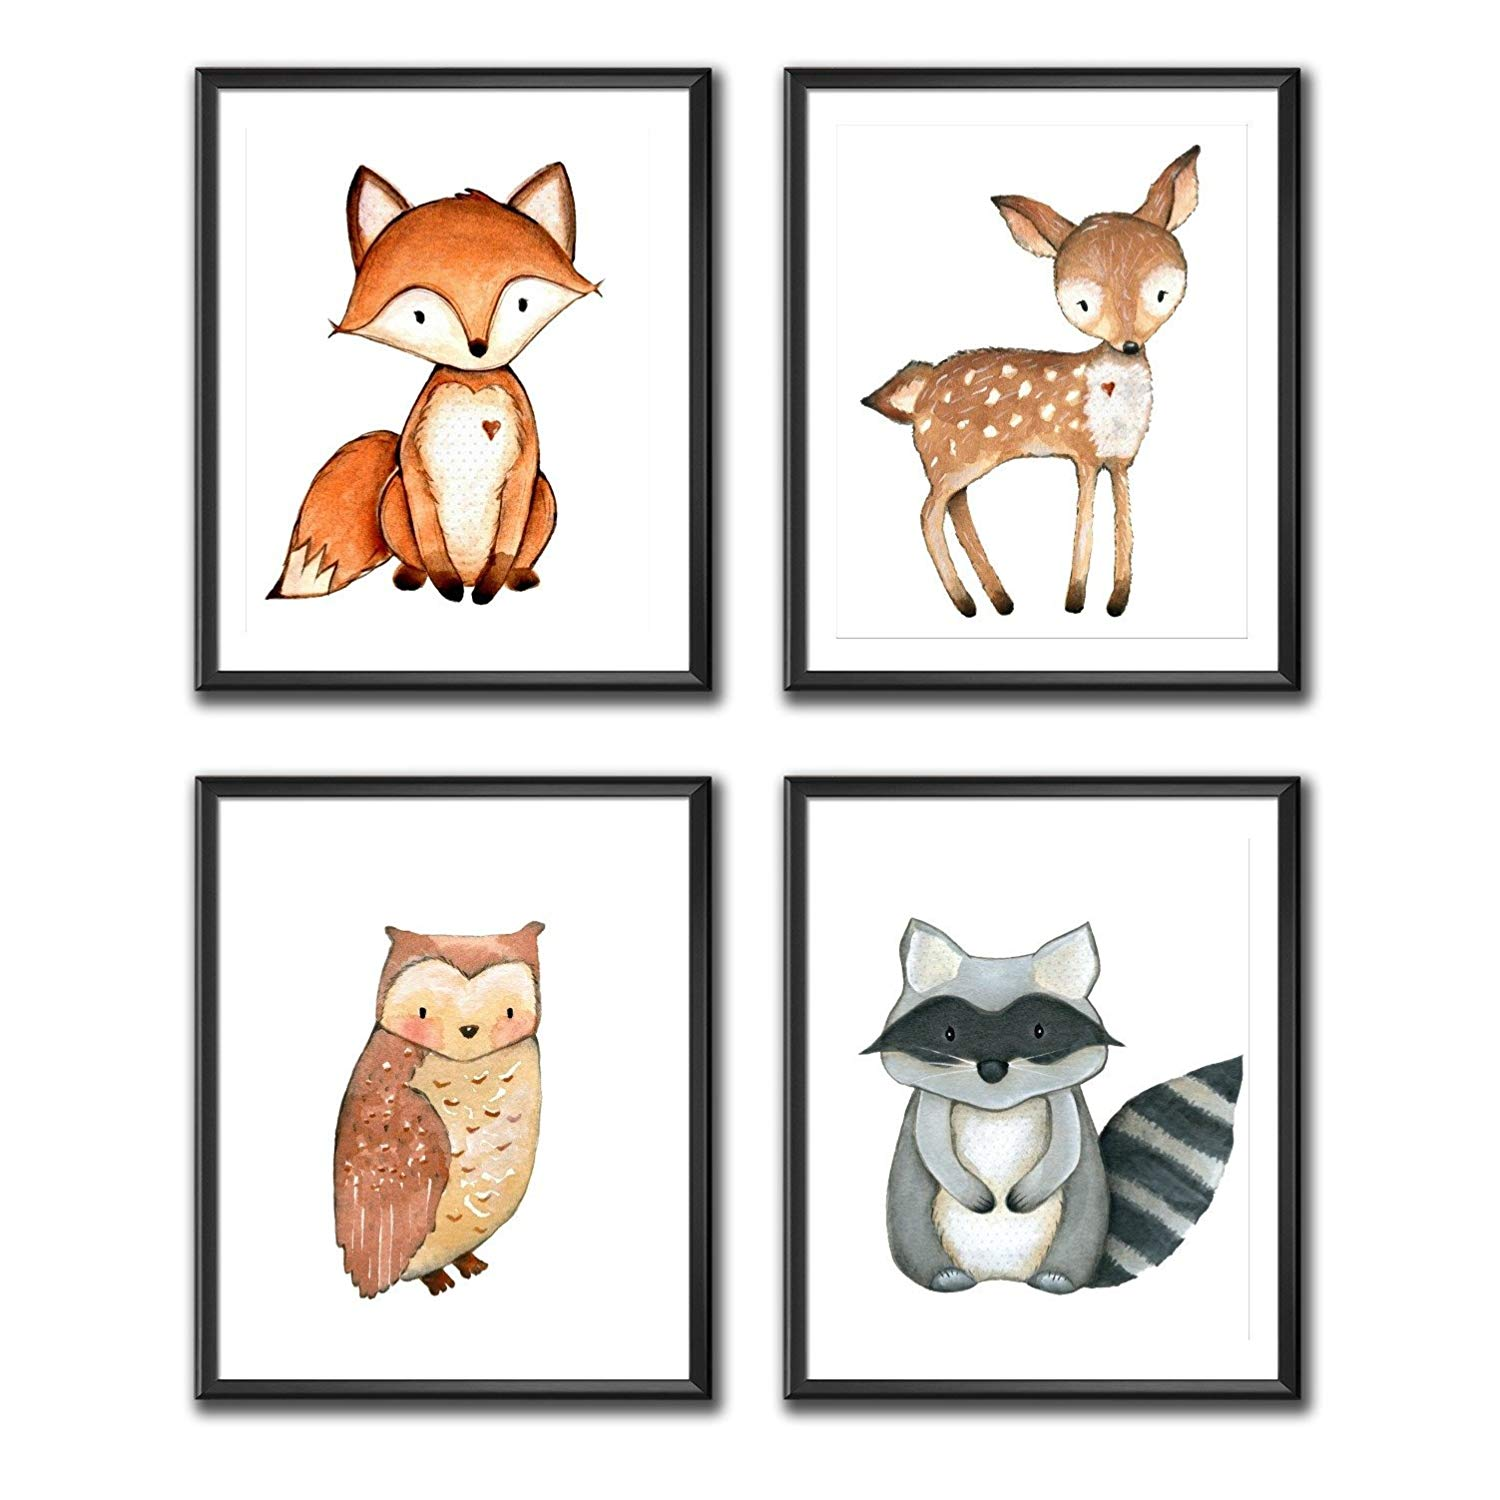 Woodland Nursery Decor, Woodland Creatures, Set of 4, Woodland Nursery  Print Set, Prints only Frame not included.